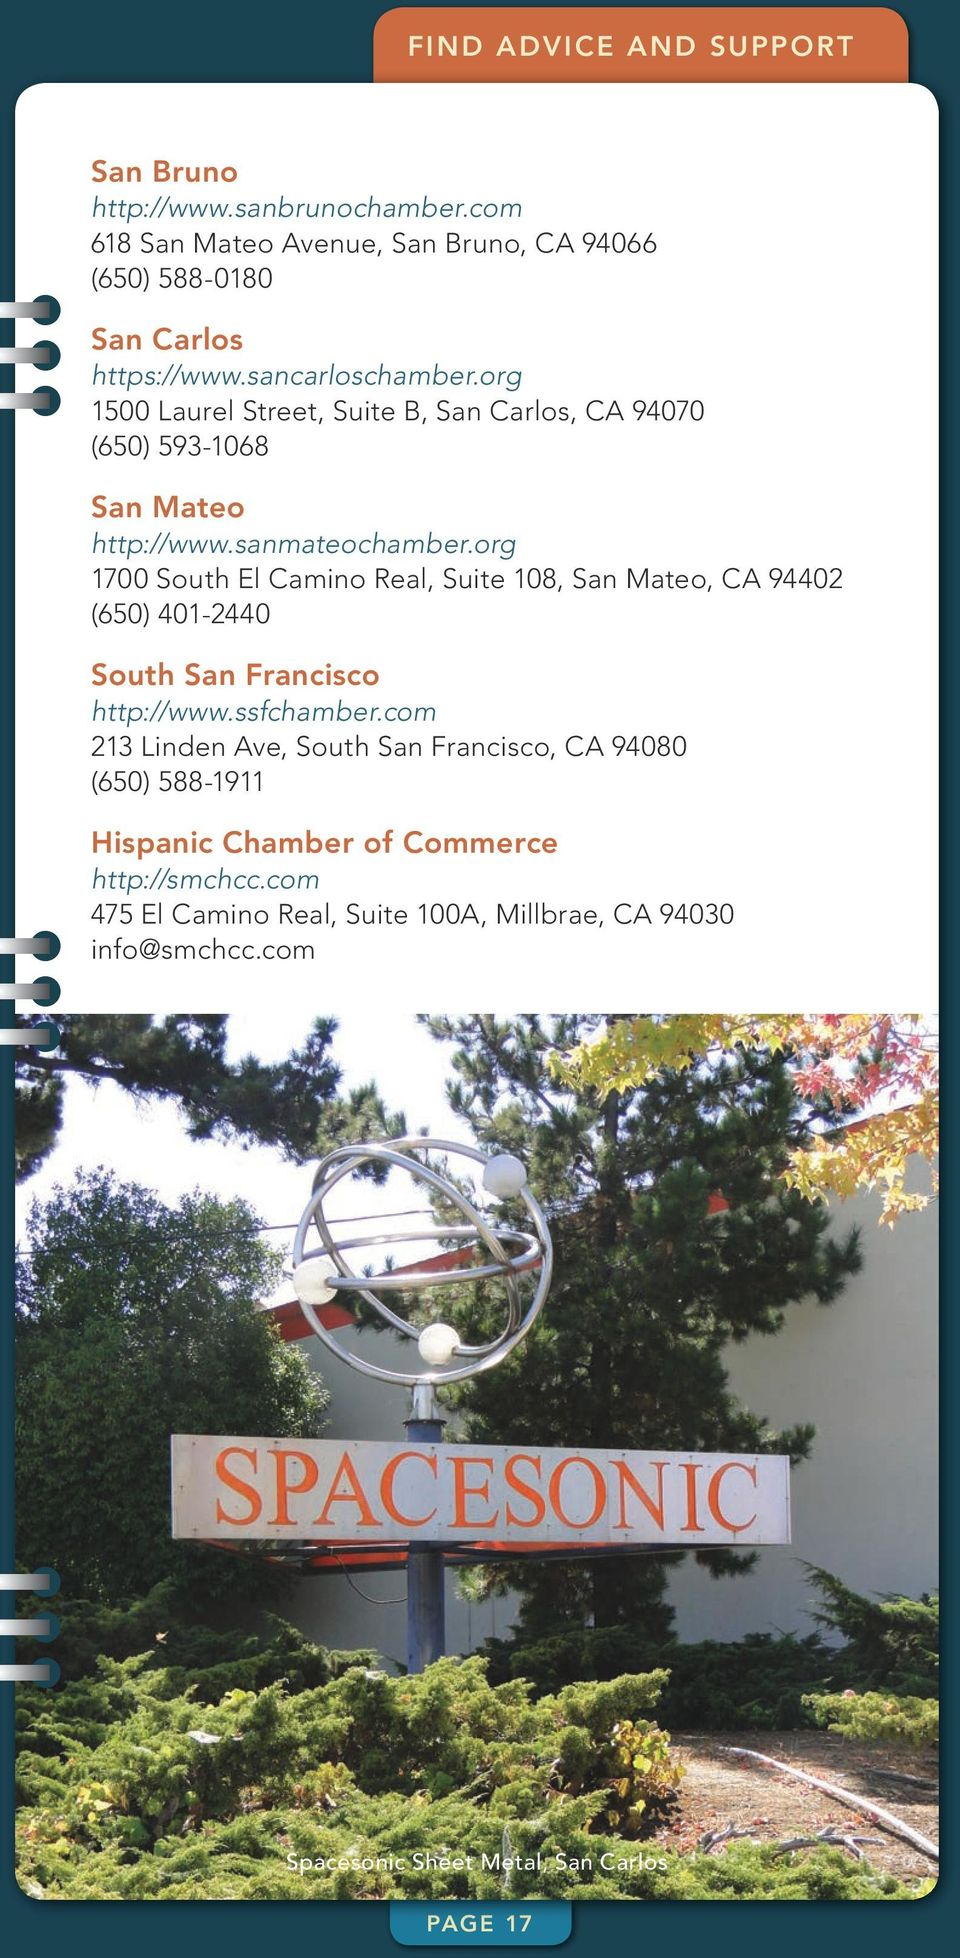 org 1700 South El Camino Real, Suite 108, San Mateo, CA 94402 (650) 401-2440 South San Francisco http://www.ssfchamber.